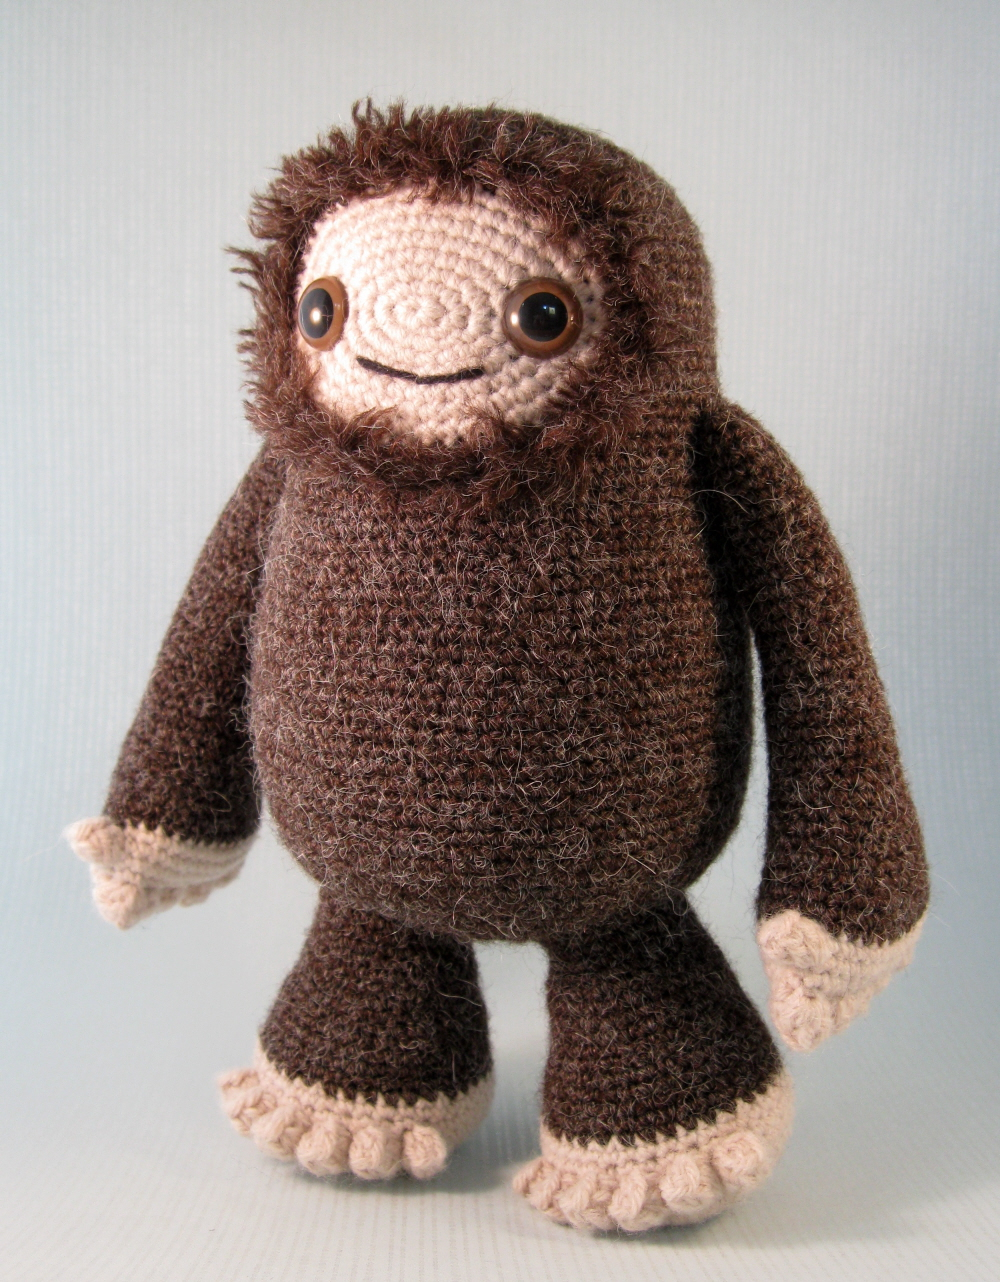 Amigurumi Bigfoot Panda : LucyRavenscar - Crochet Creatures: Yeti and Bigfoot ...